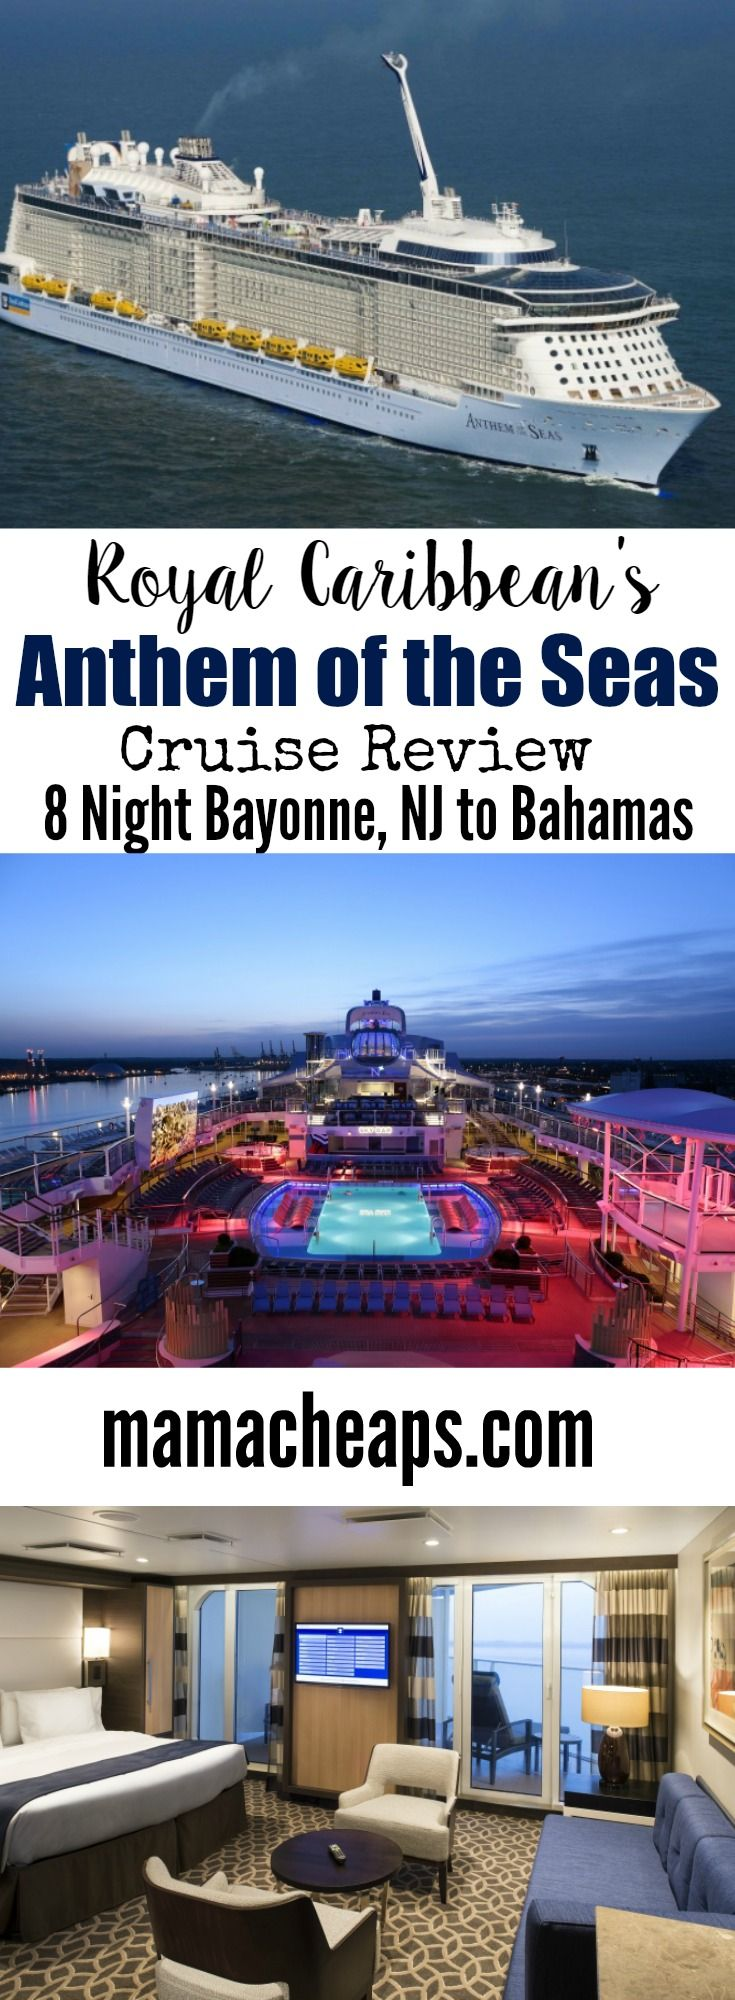 Anthem of the Seas Royal Caribbean Cruise Review (8 Night Bayonne, NJ to Bahamas) Find more travel reviews at MamaCheaps.com!